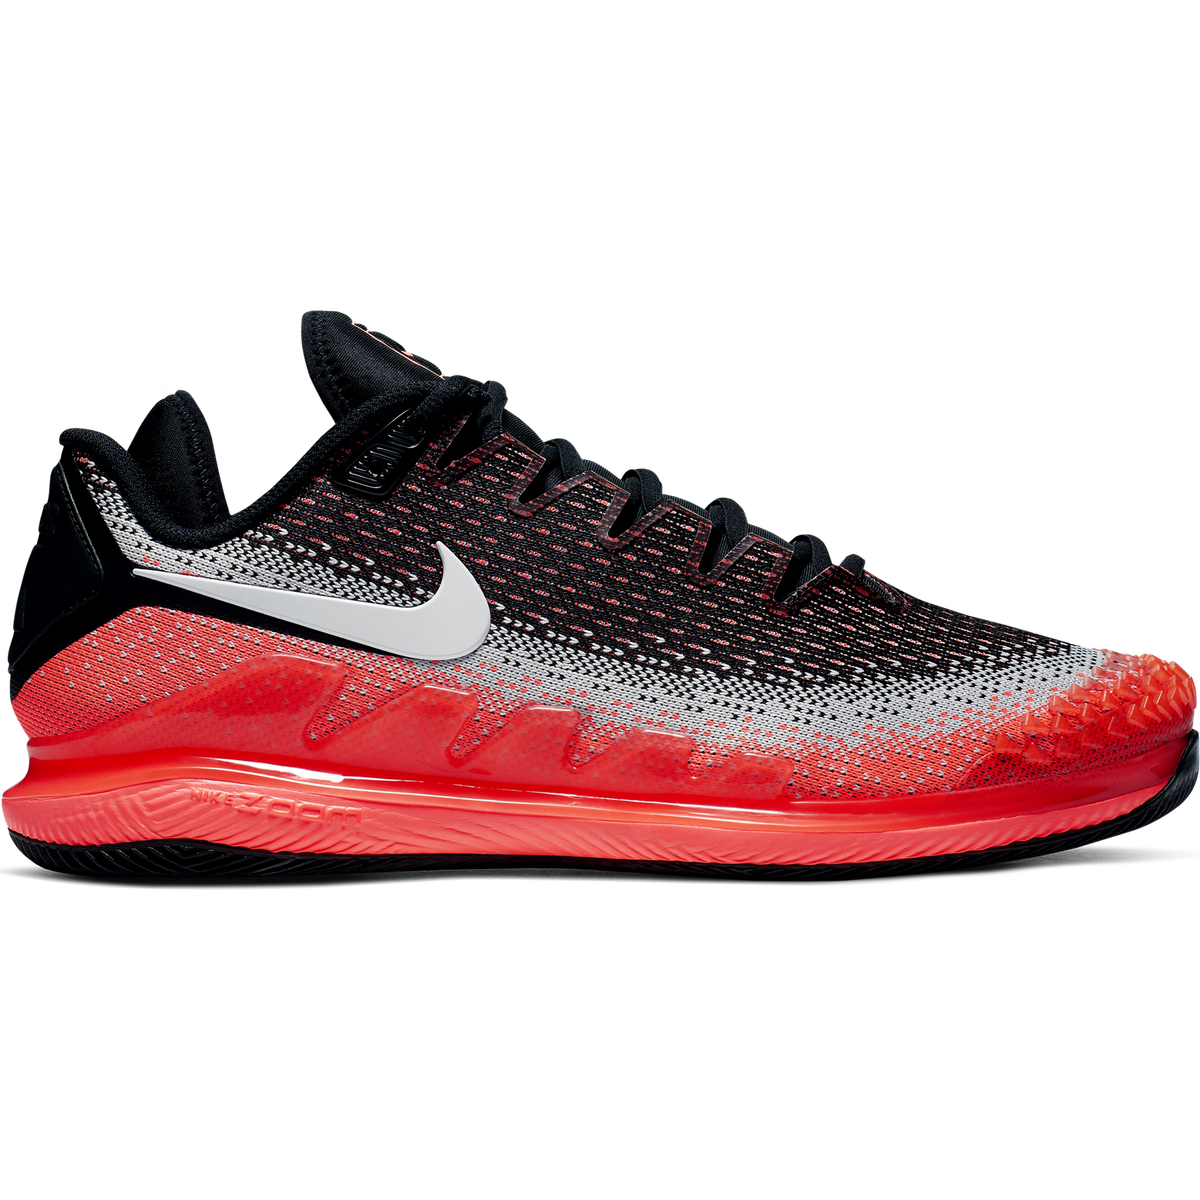 NIKECOURT AIR ZOOM VAPOR X KNIT AR0496